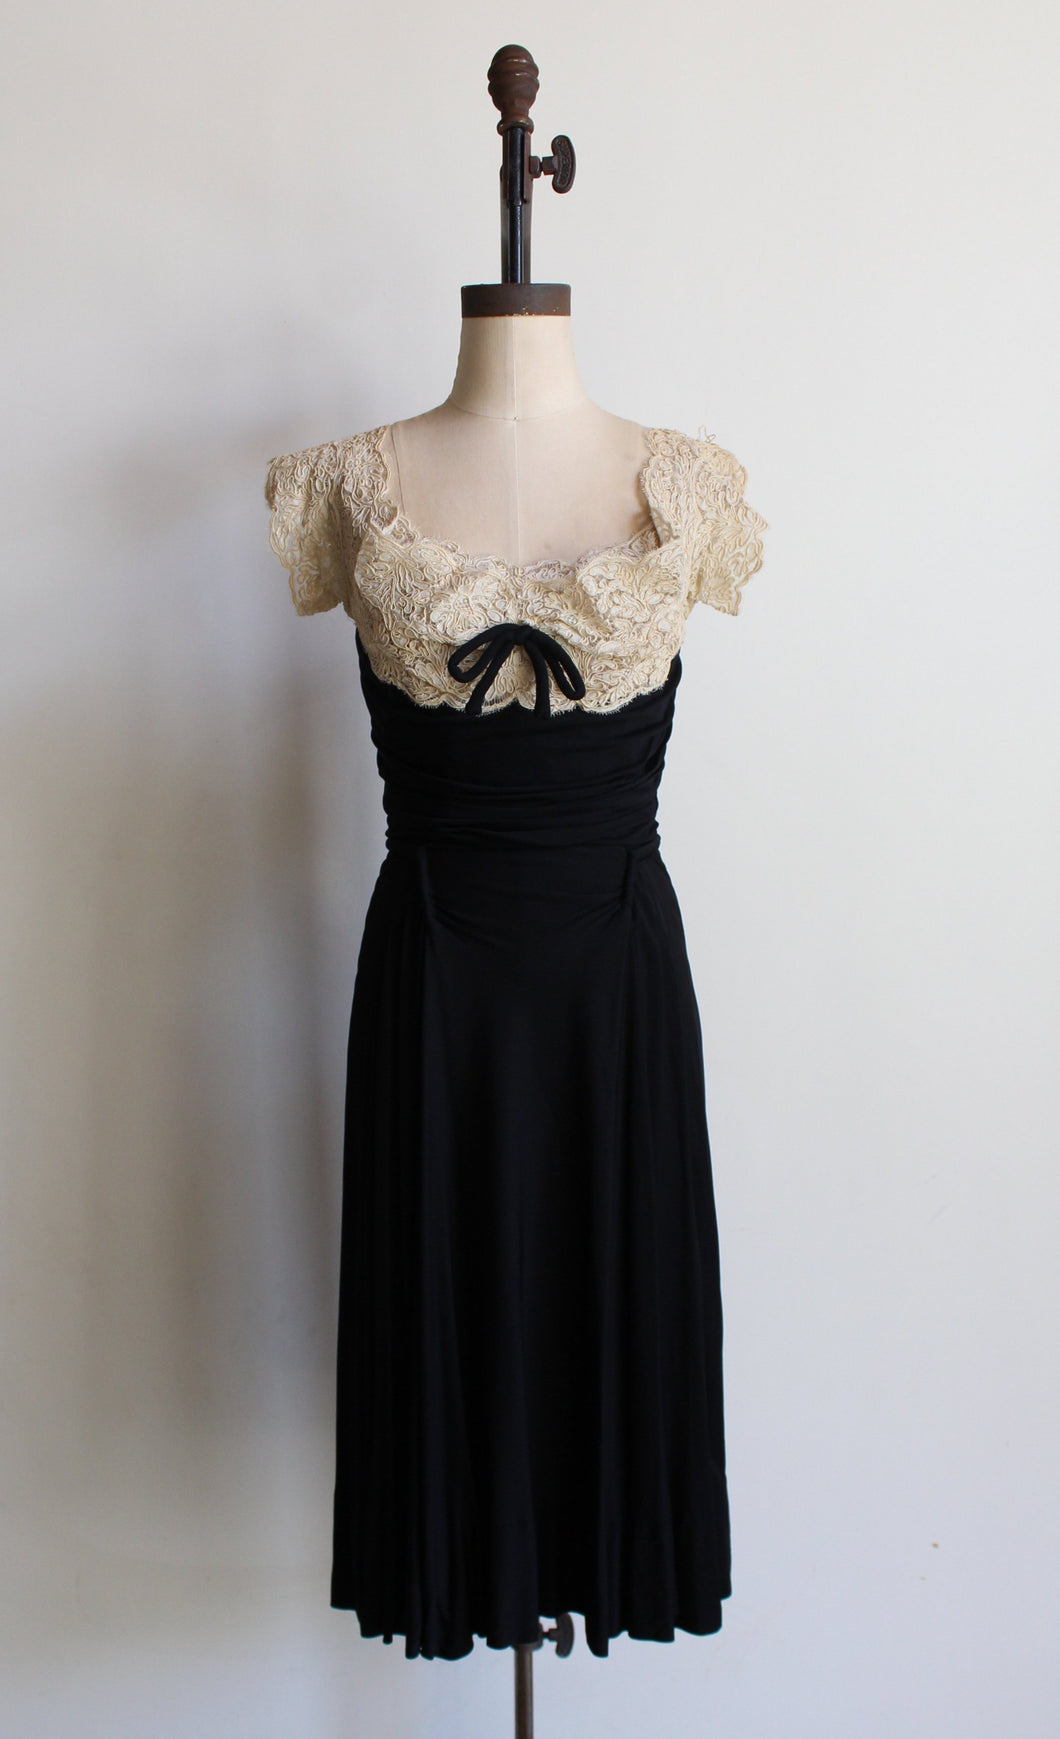 1940s Black Jersey White Soutache Lace Dress by Betty Clyne